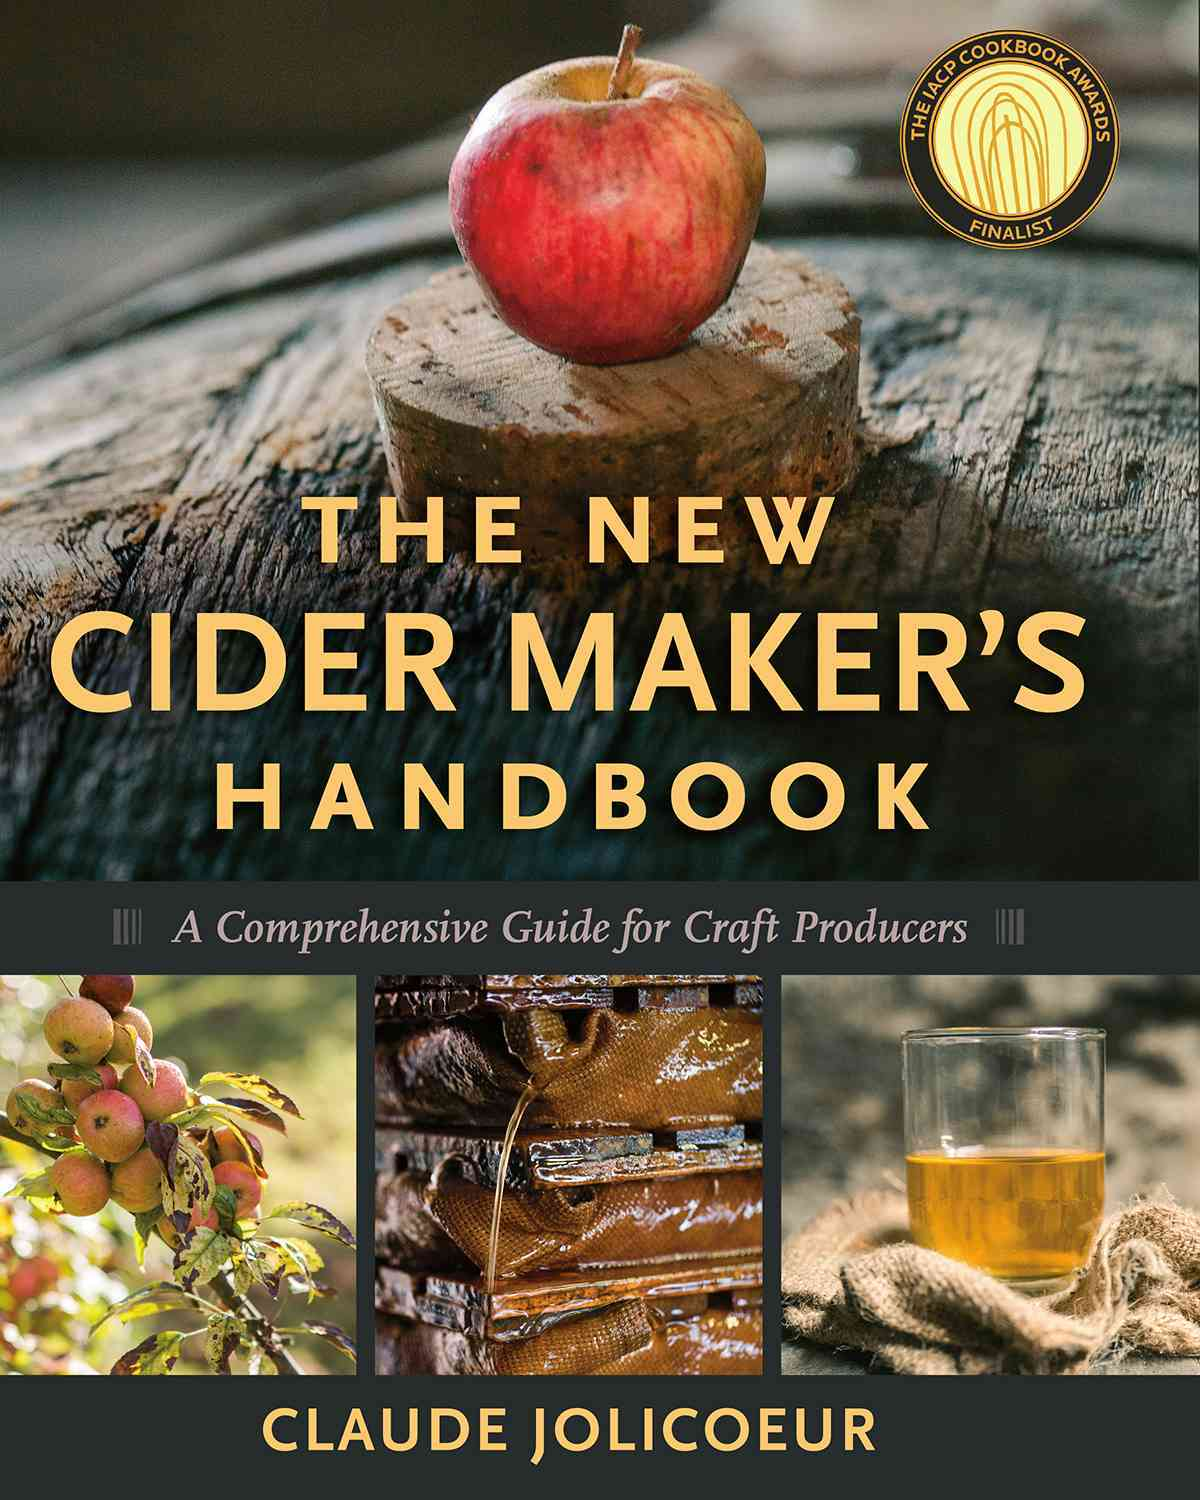 The New Cider Maker's Handbook: A Comprehensive Guide for Craft Producers (Hardcover)